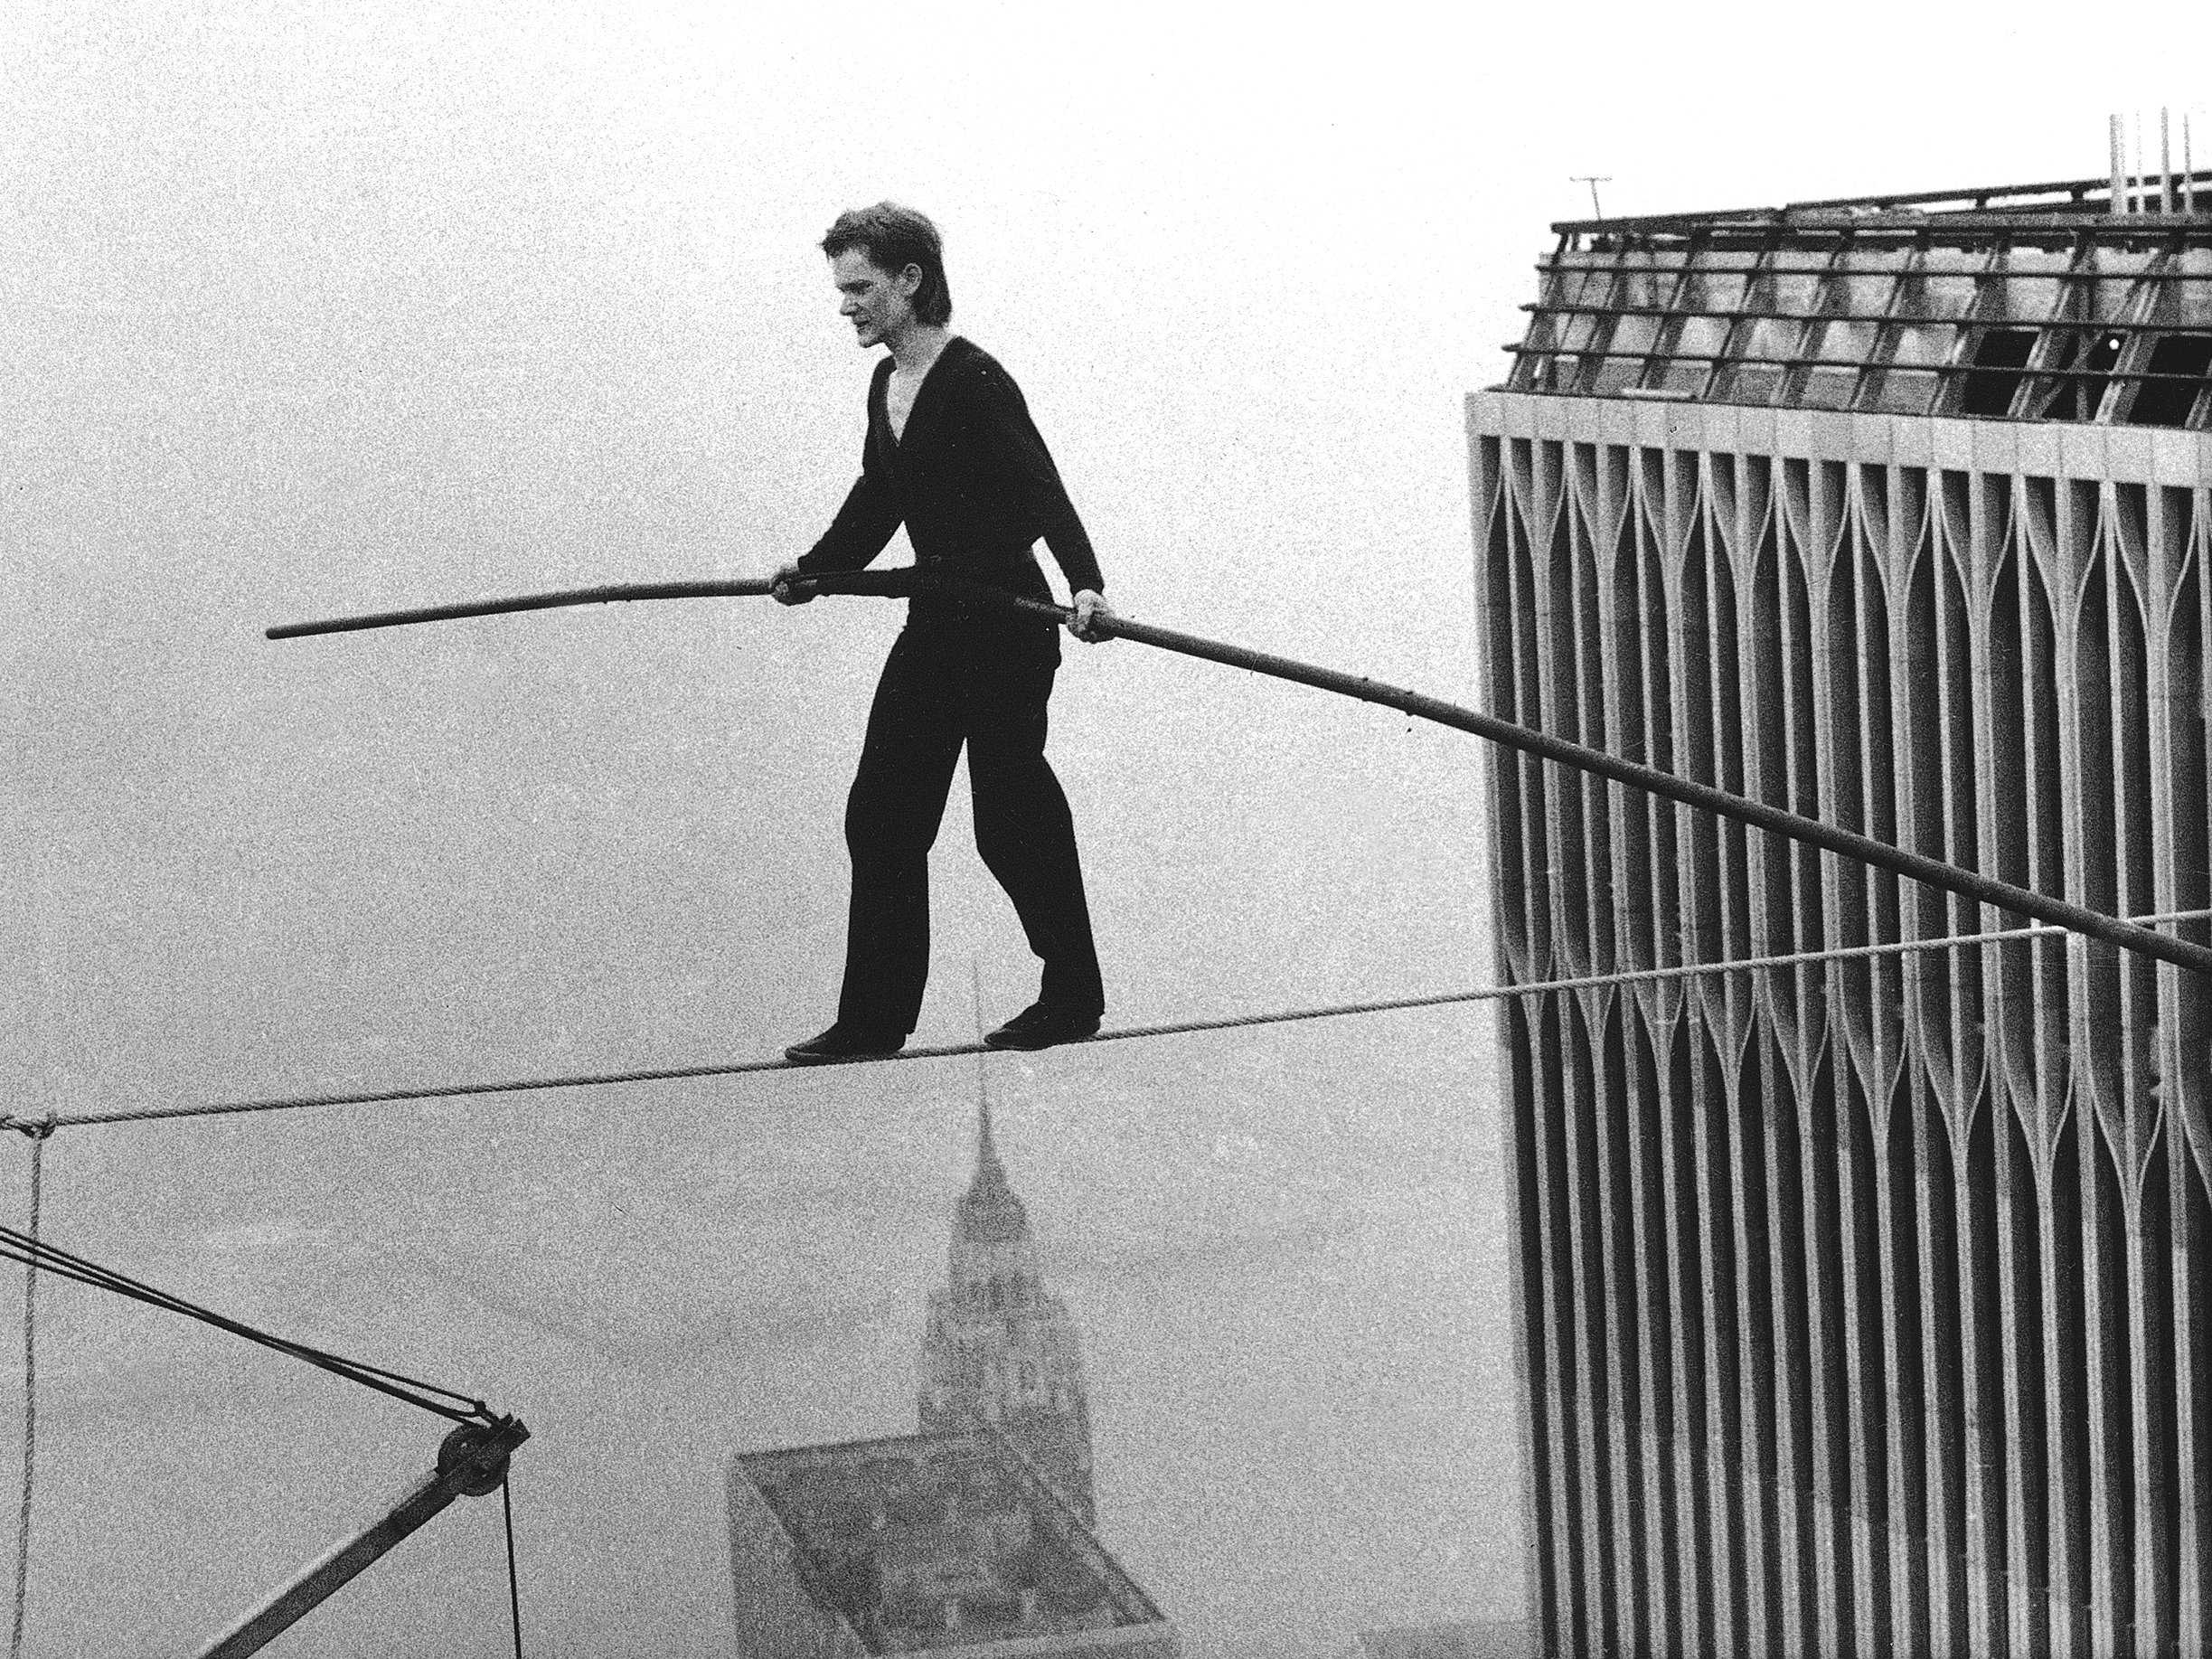 41-years-ago-today-a-frenchman-walked-a-tightrope-between-the-twin-towers.jpg